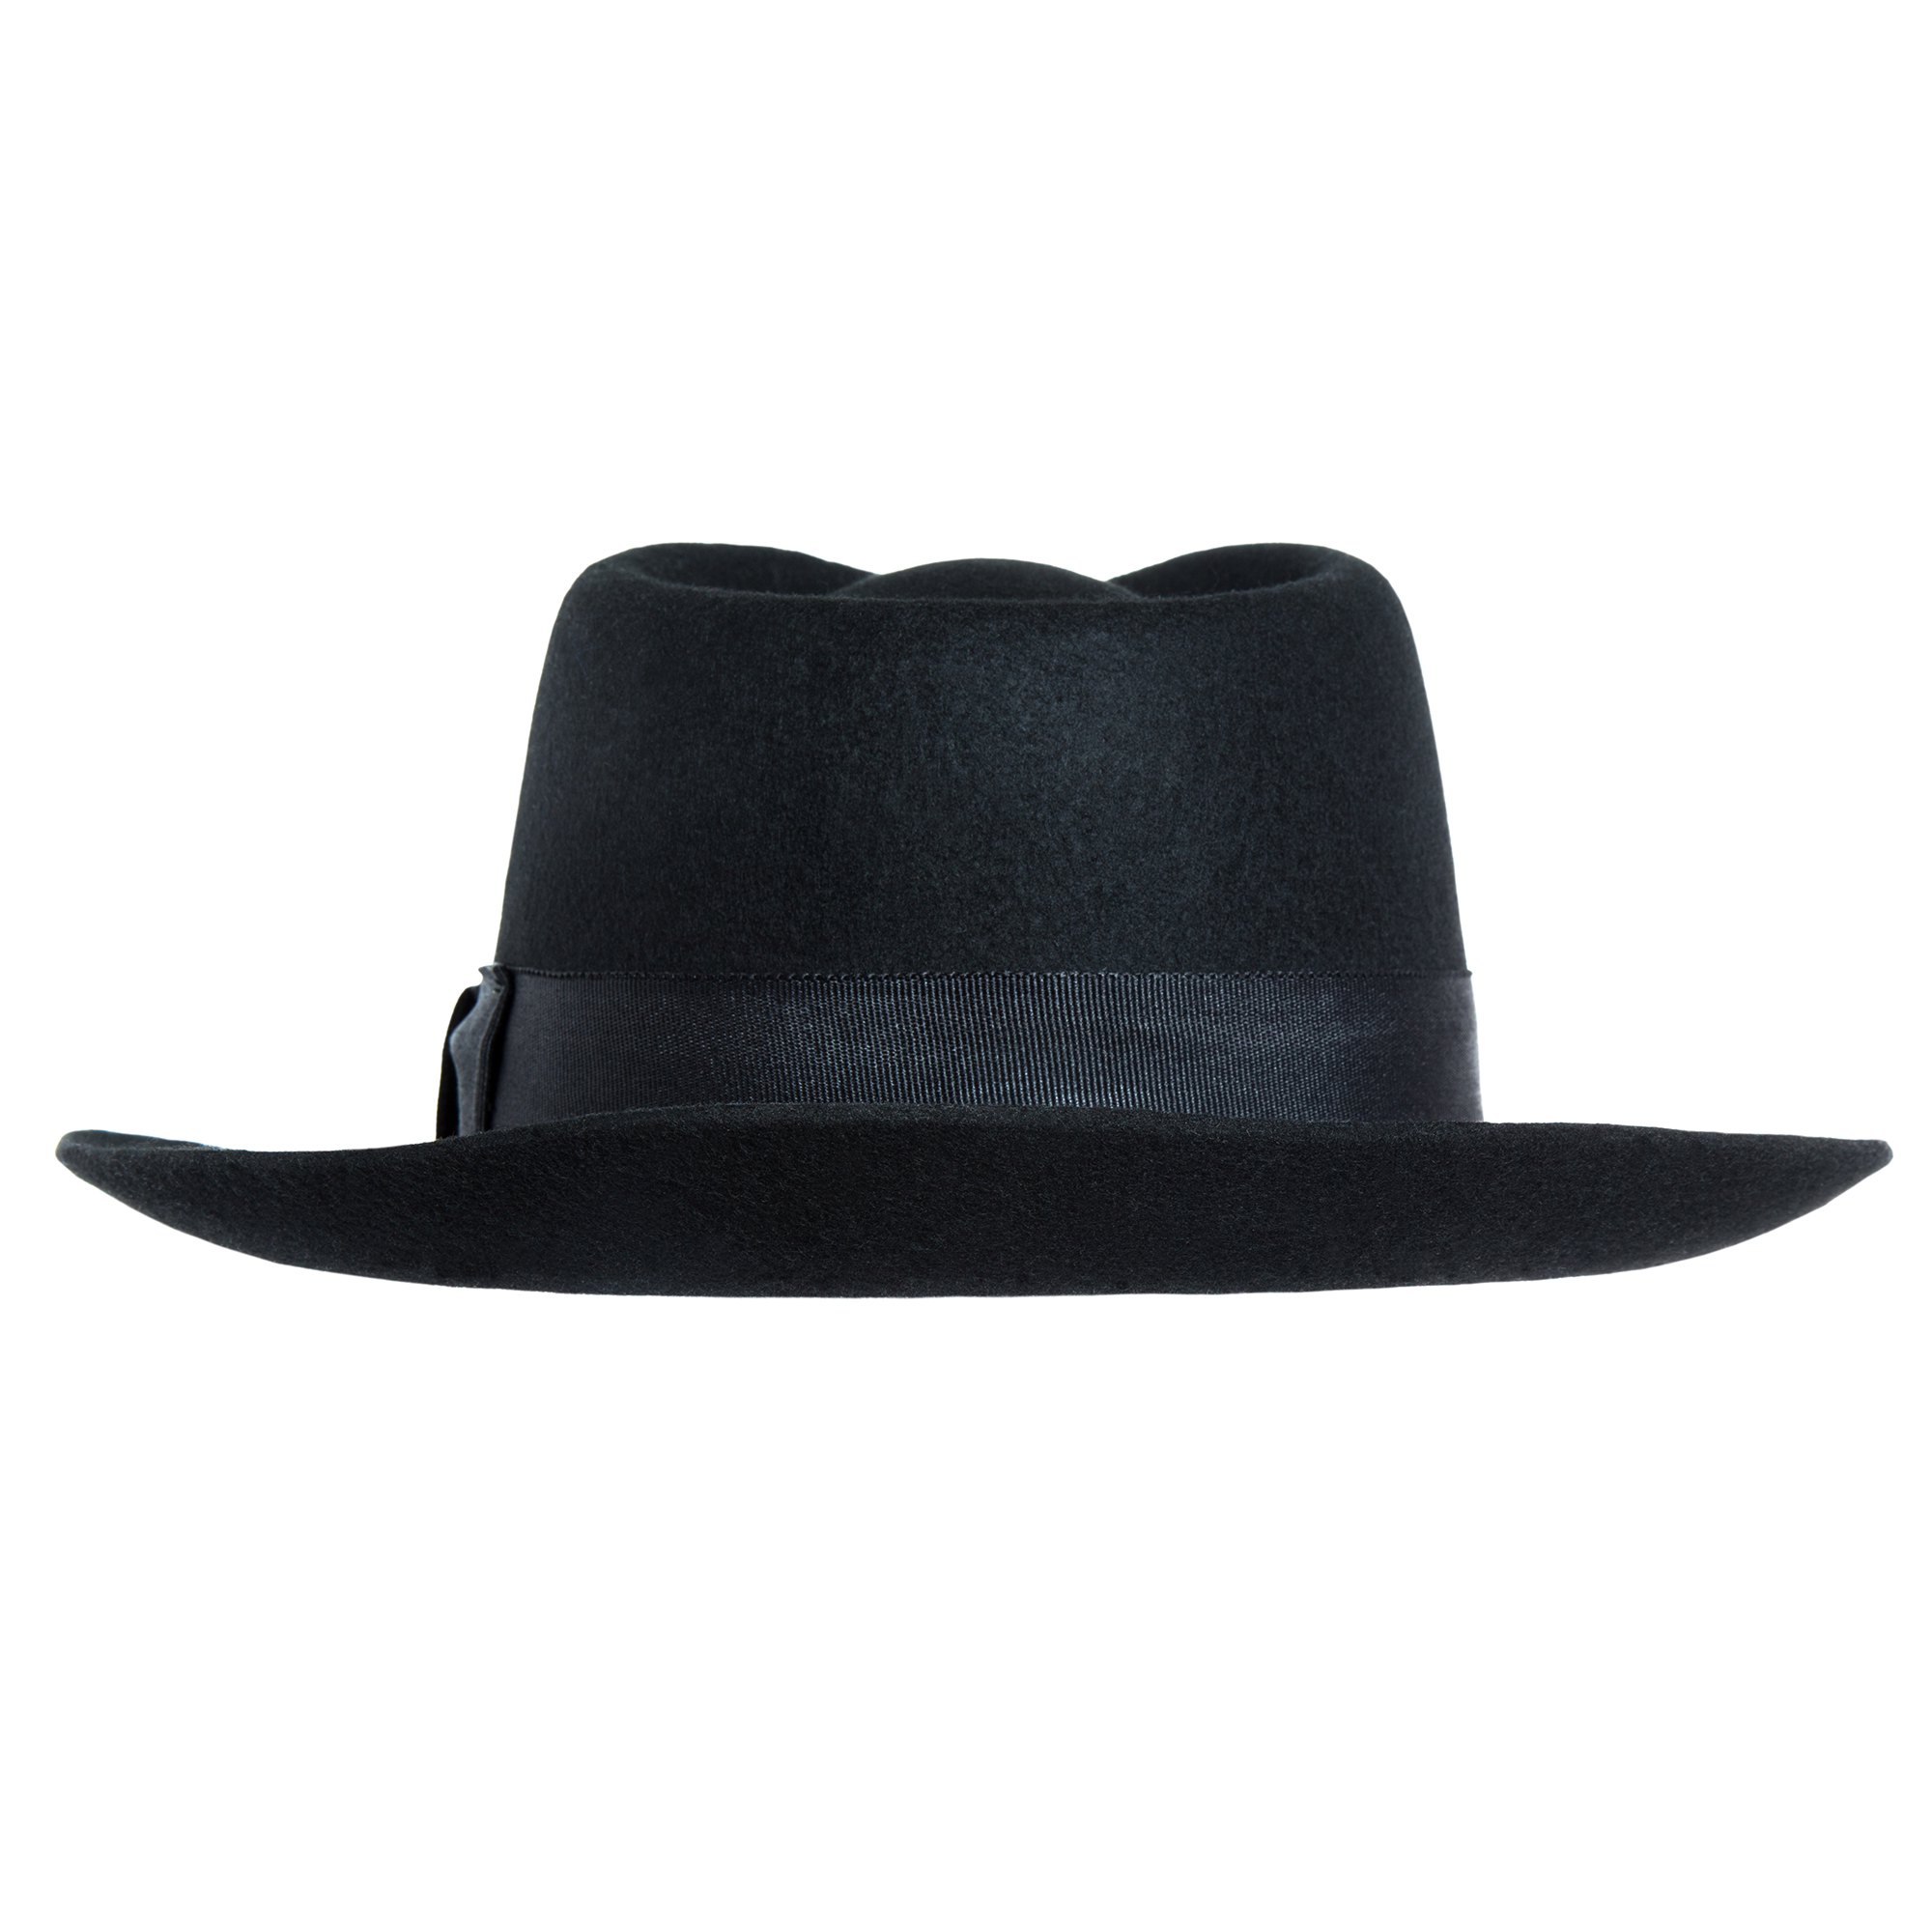 2cc249b21 Black Fedora Hat